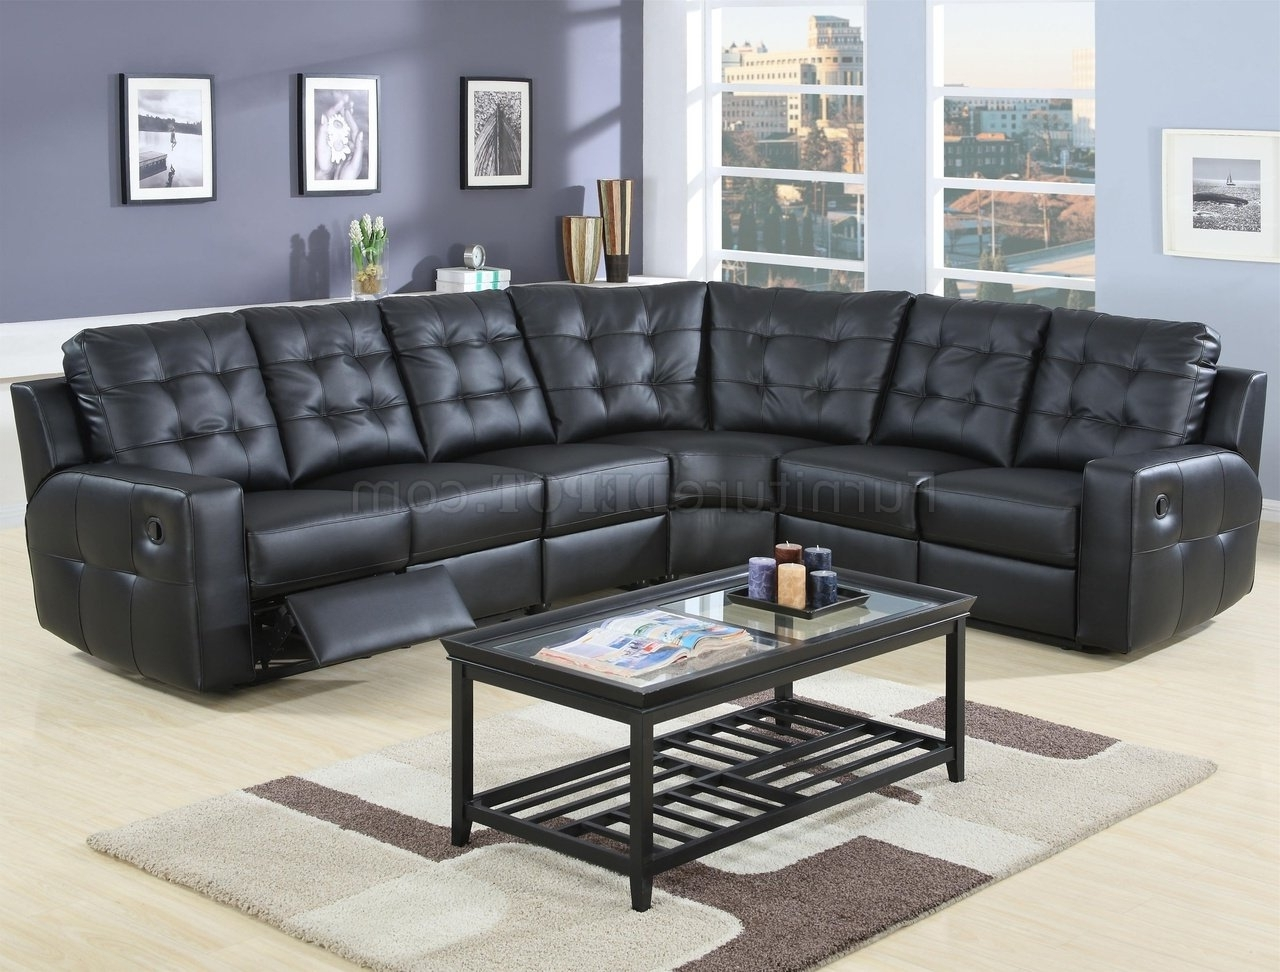 Most Current Used Sectional Sofas Within Modern Leather Double Reclining Sectional Sofa 600315 Black (View 3 of 15)